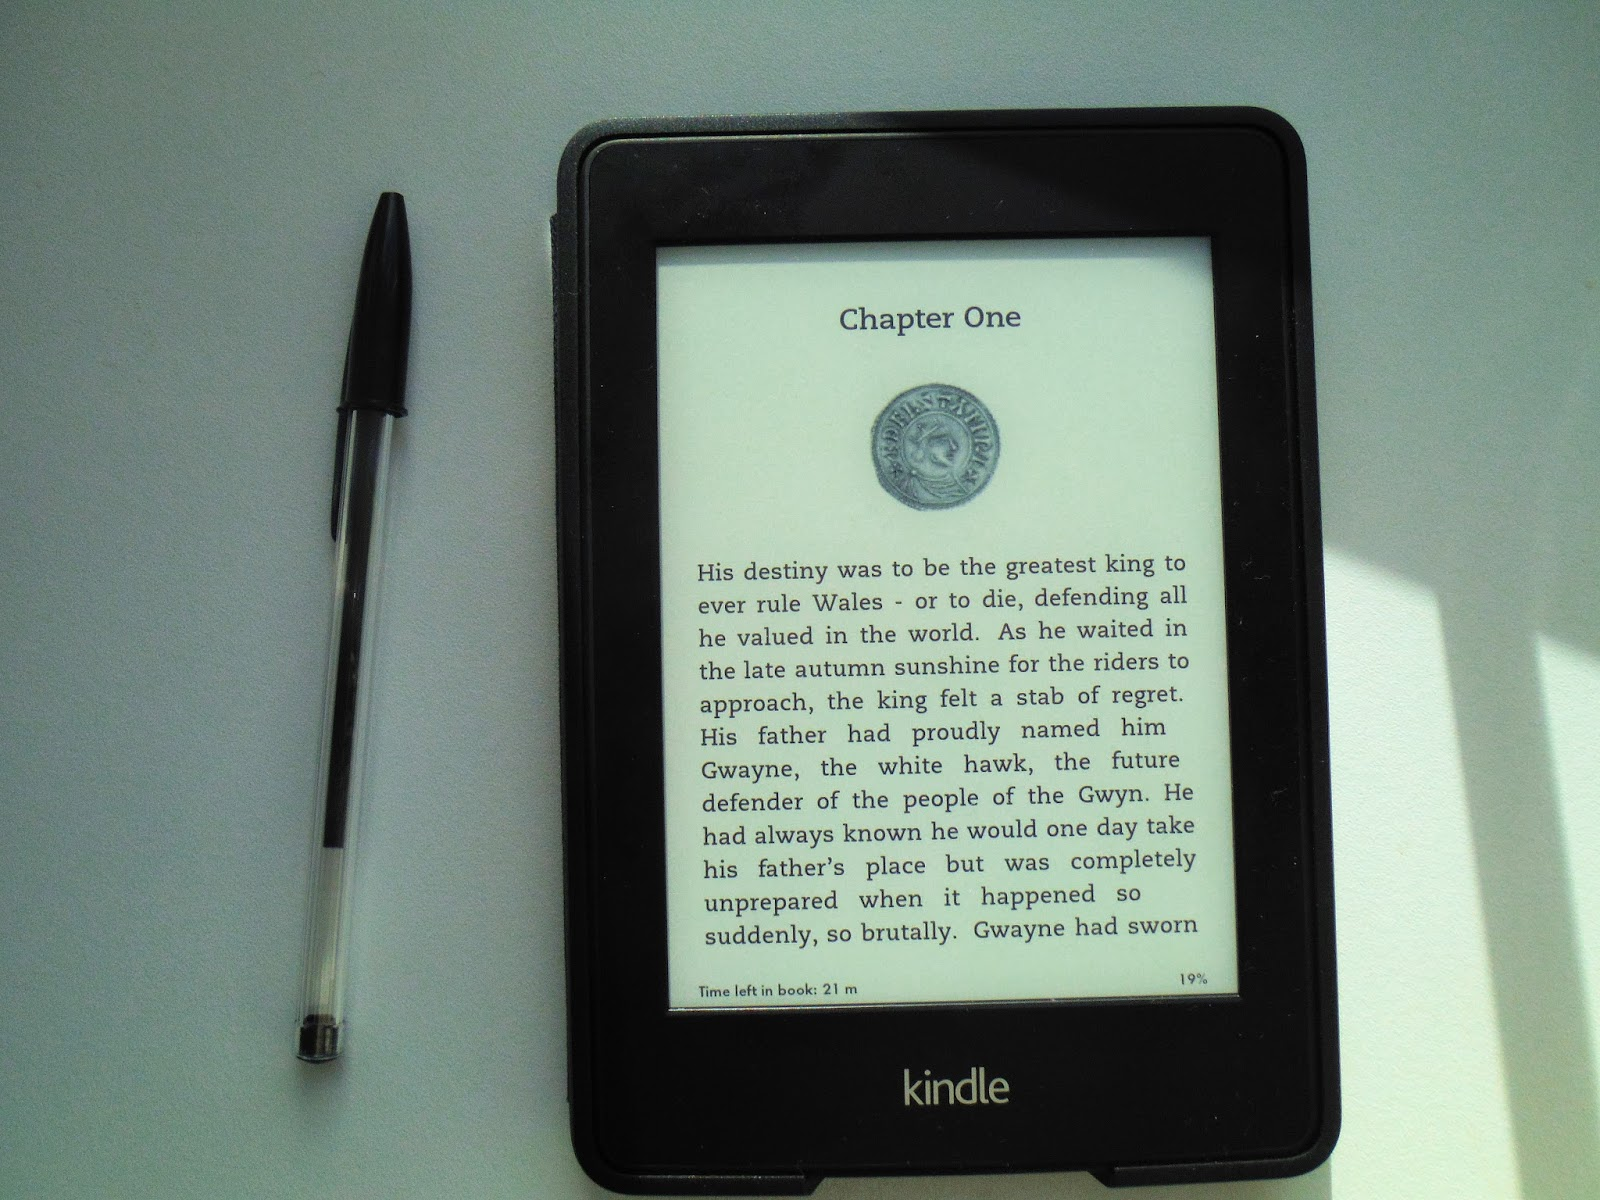 Classic Book Cover For Kindle Paperwhite ~ The top kindle books of all time based on annual bestseller lists